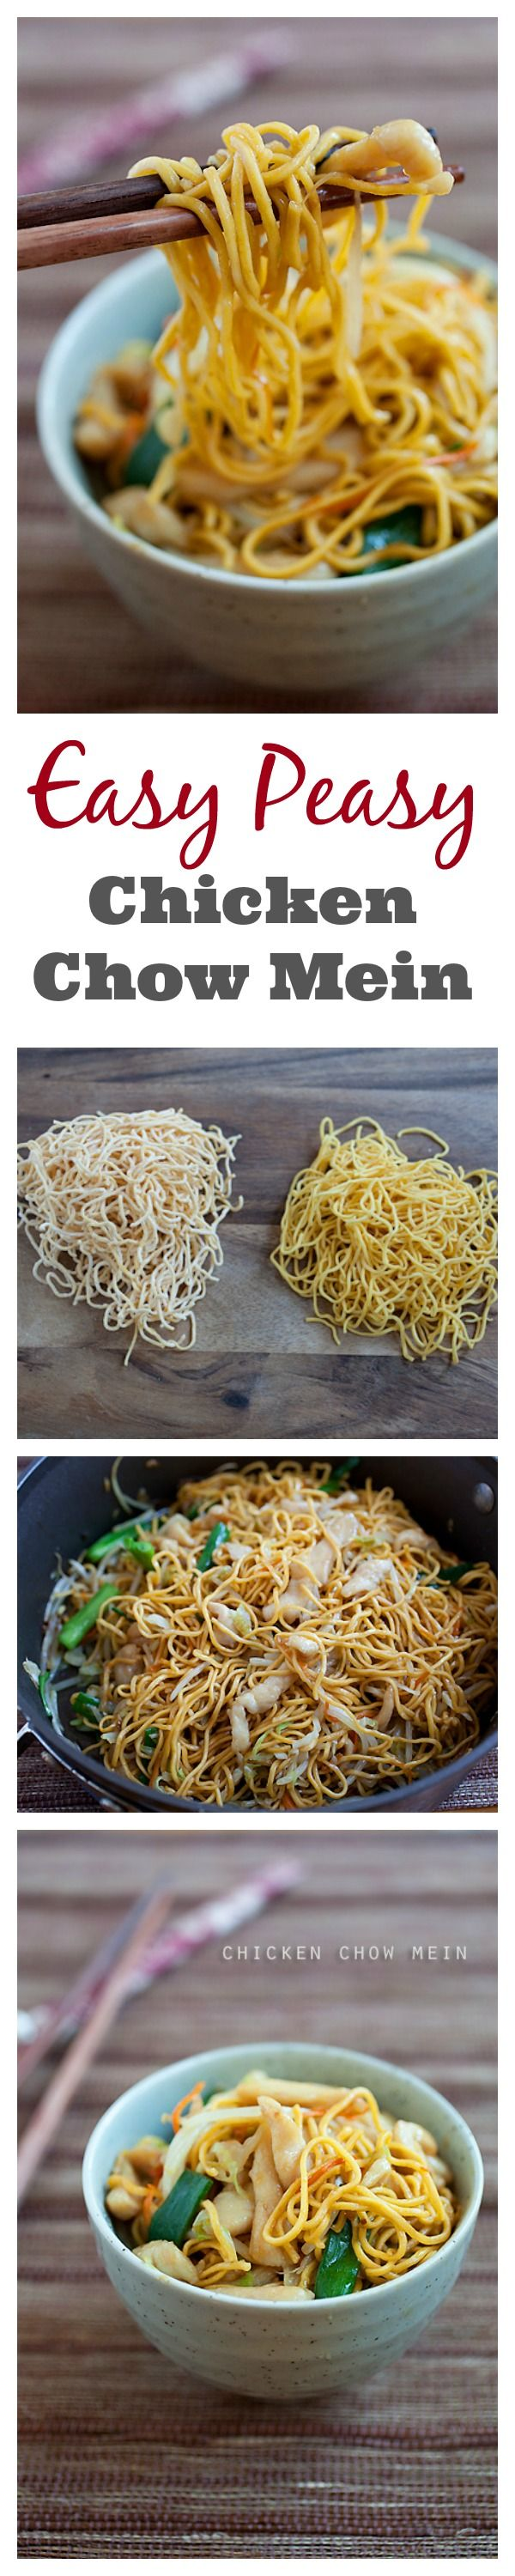 {Hong Kong} Easy and the most delicious Chicken Chow Mein recipe that is MUCH better and healthier than your regular Chinese takeout. Learn how to make it with this recipe | rasamalaysia.com